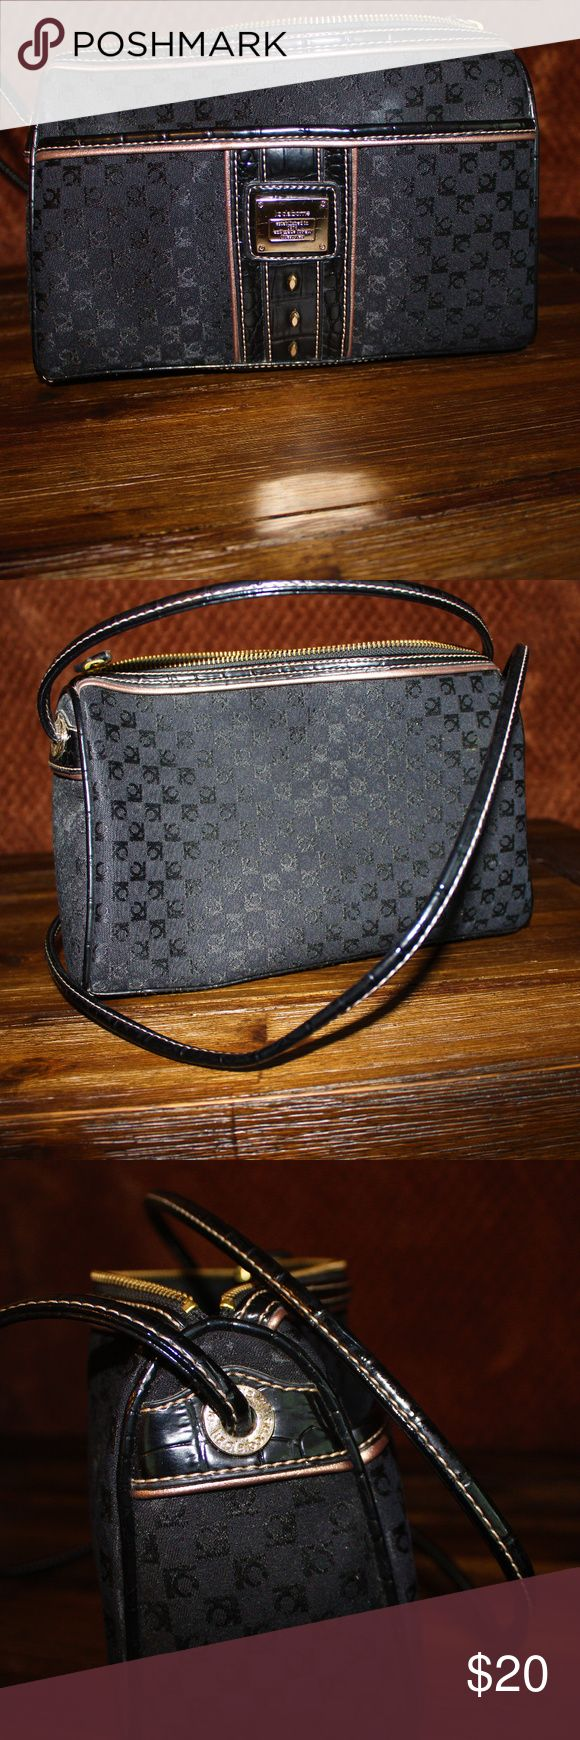 Liz Claiborne Shoulder bag Liz Claiborne Shoulder bag , used , great condition. Liz Claiborne Bags Shoulder Bags